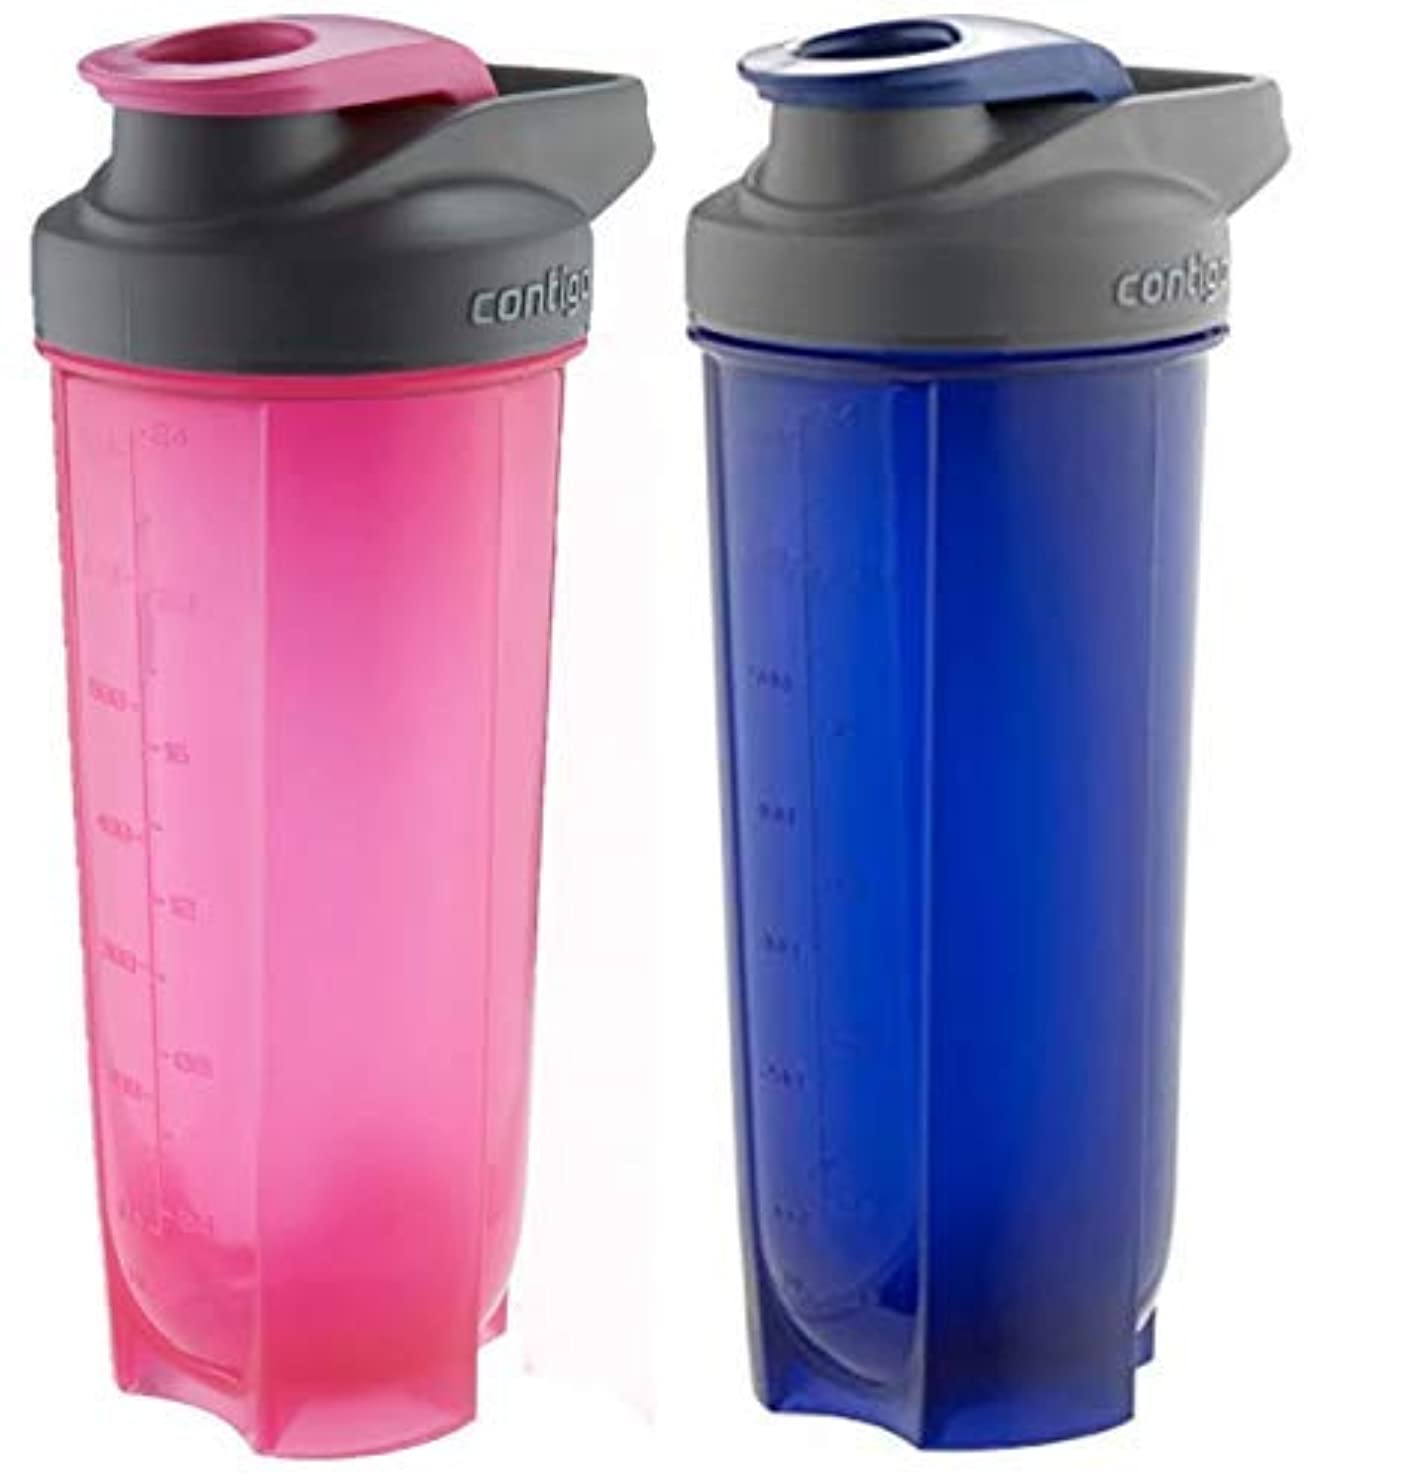 梨謎手Contigo Shake & Go Fit Bottles, 28 Oz / 828 ml Each, Two Pack, Pink & Blue, His & Hers Shaker Bottles [並行輸入品]